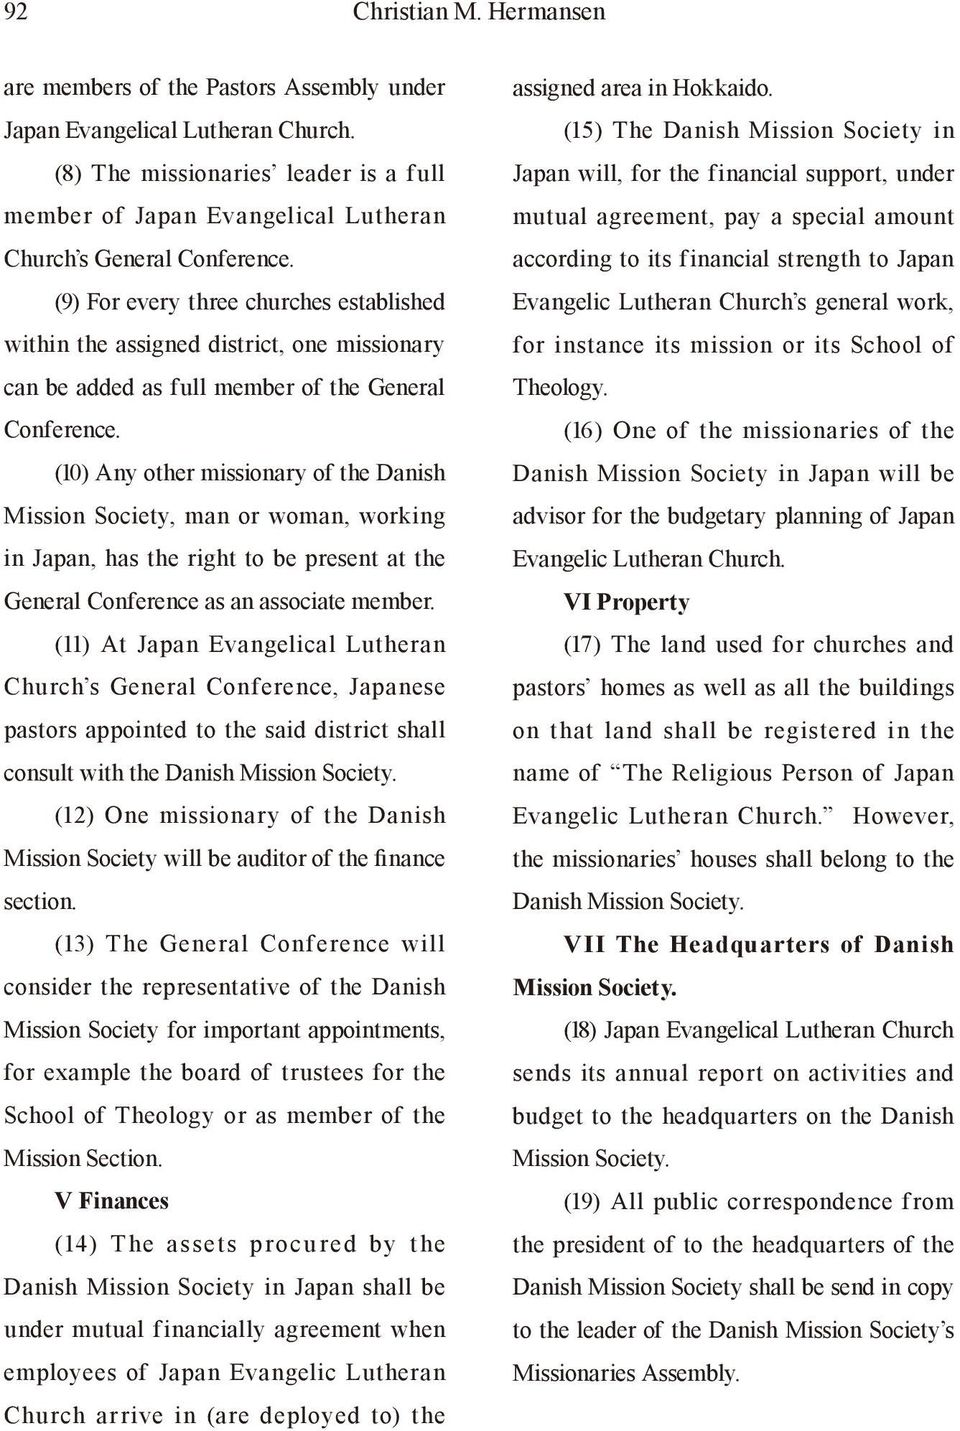 (9) For every three churches established within the assigned district, one missionary can be added as full member of the General Conference.